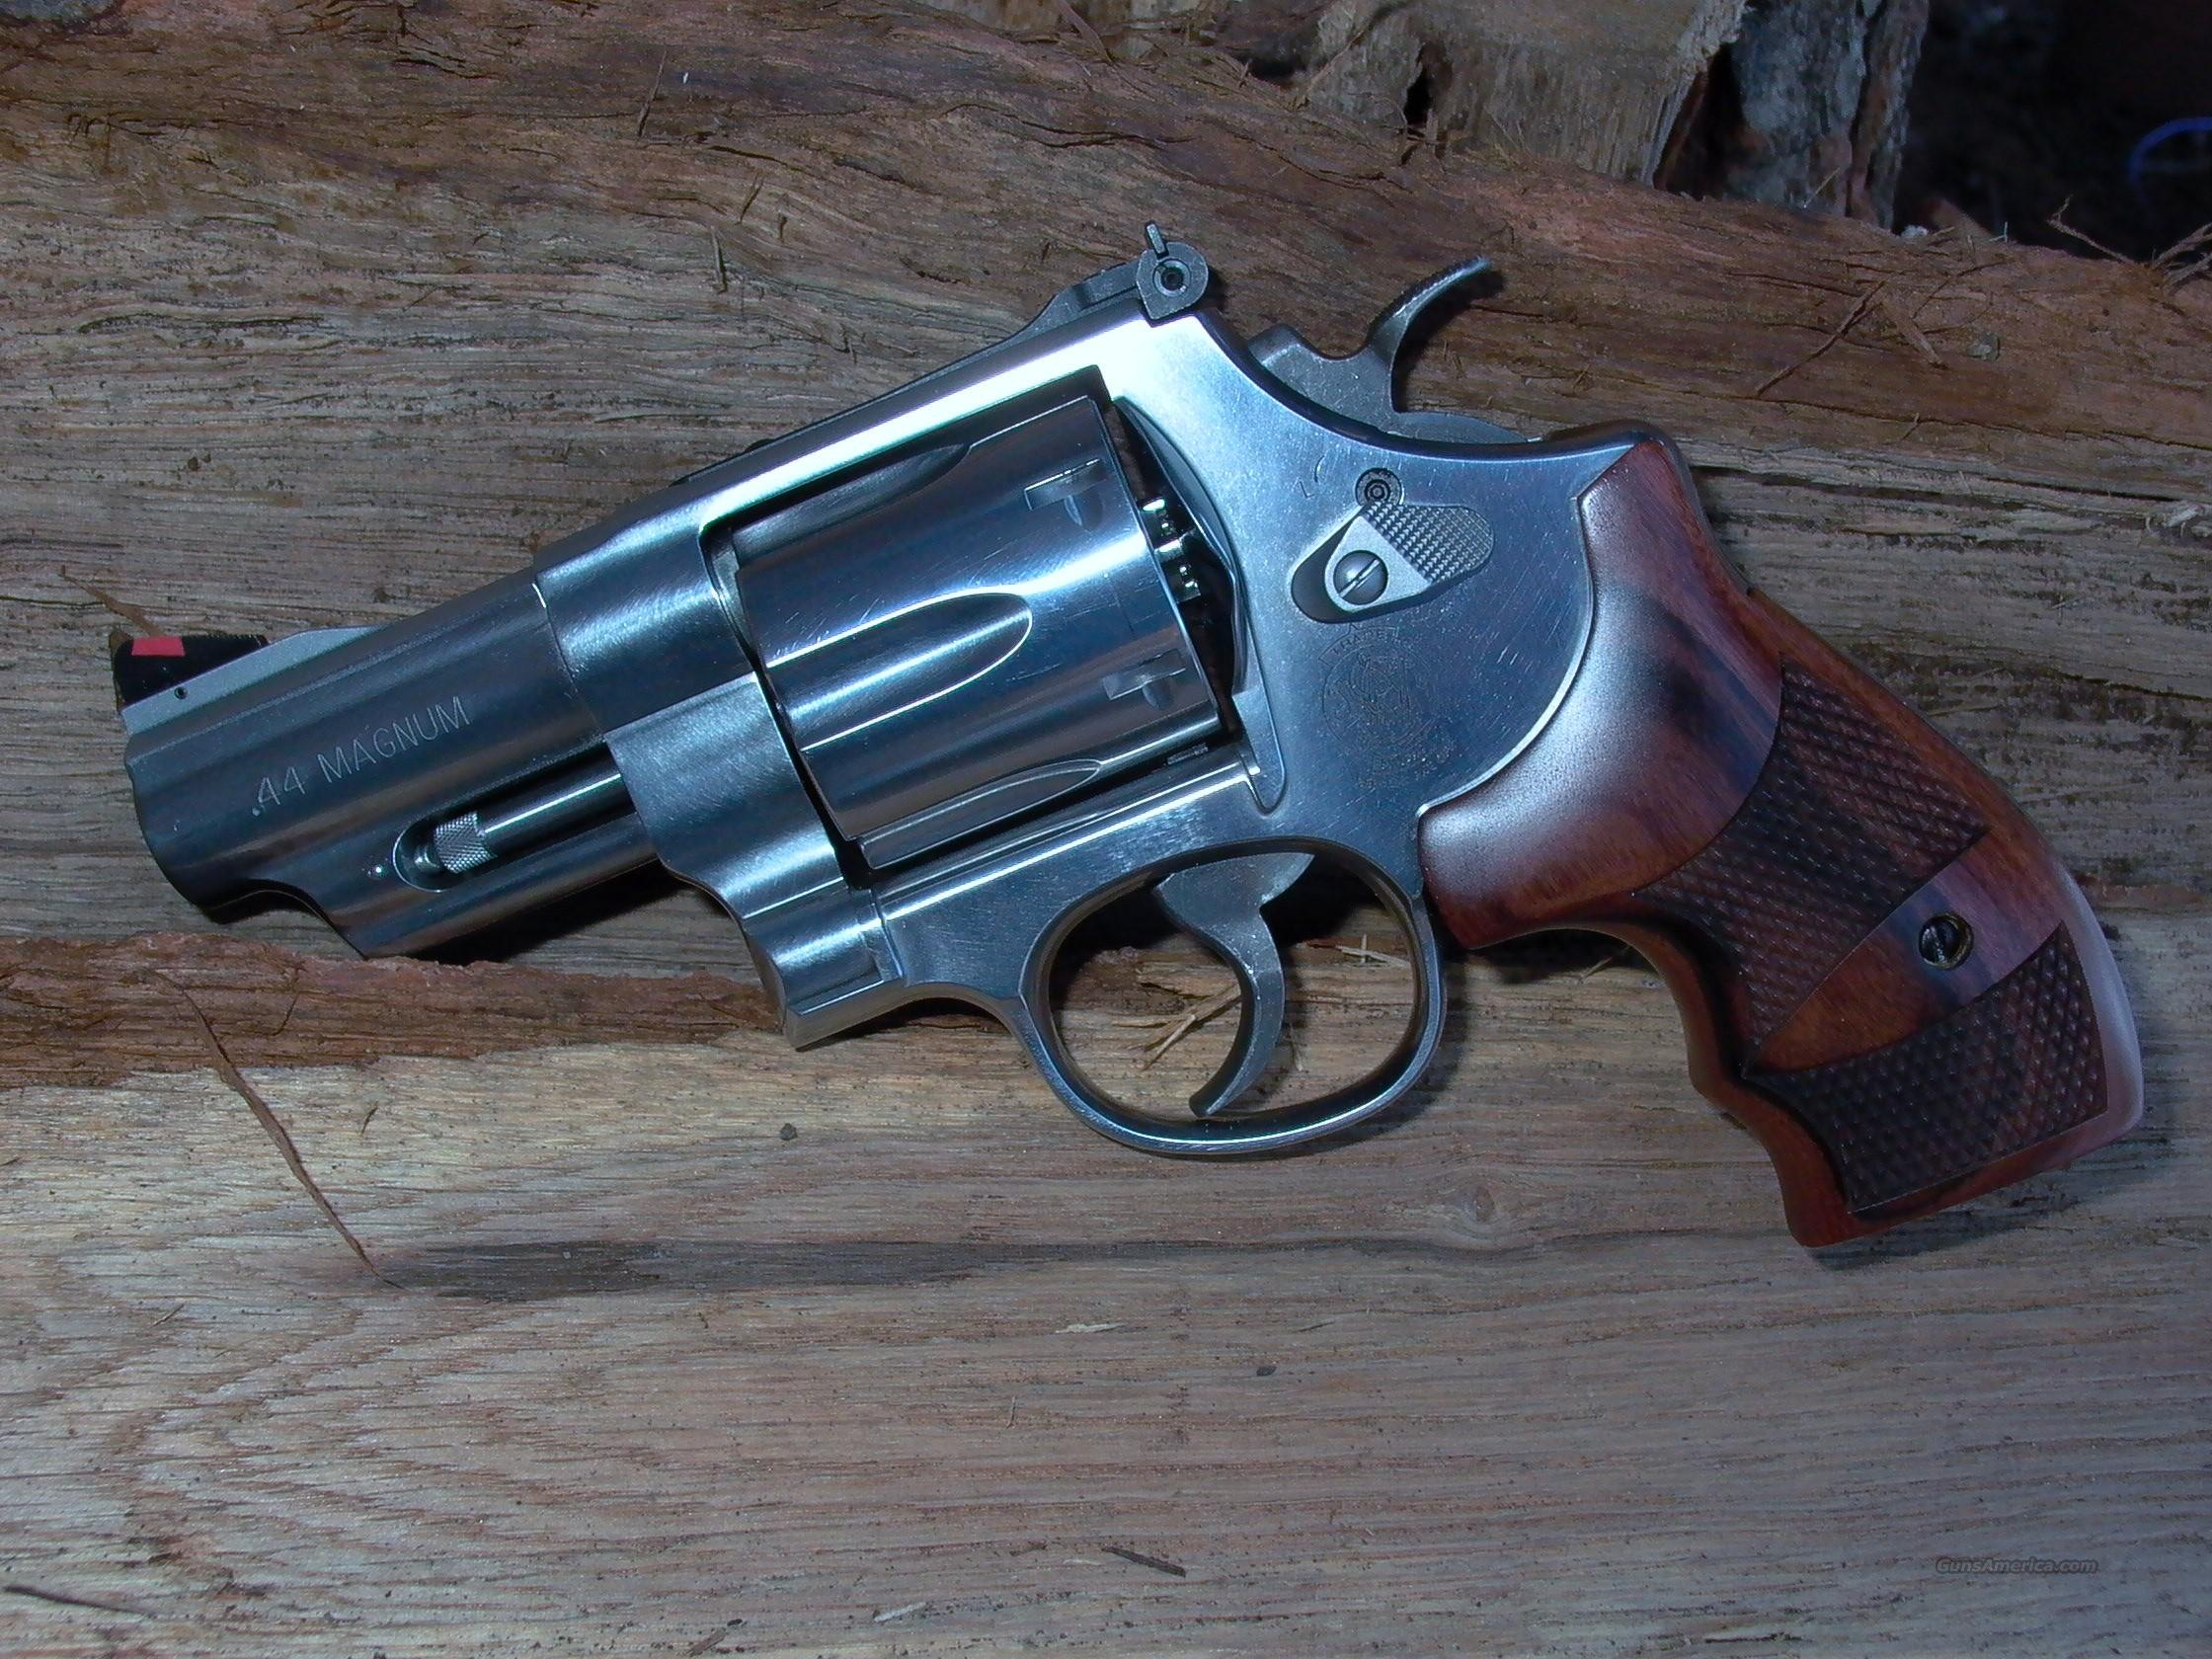 629 3 INCH 44 MAG 44 SPECIAL  Guns > Pistols > Smith & Wesson Revolvers > Model 629